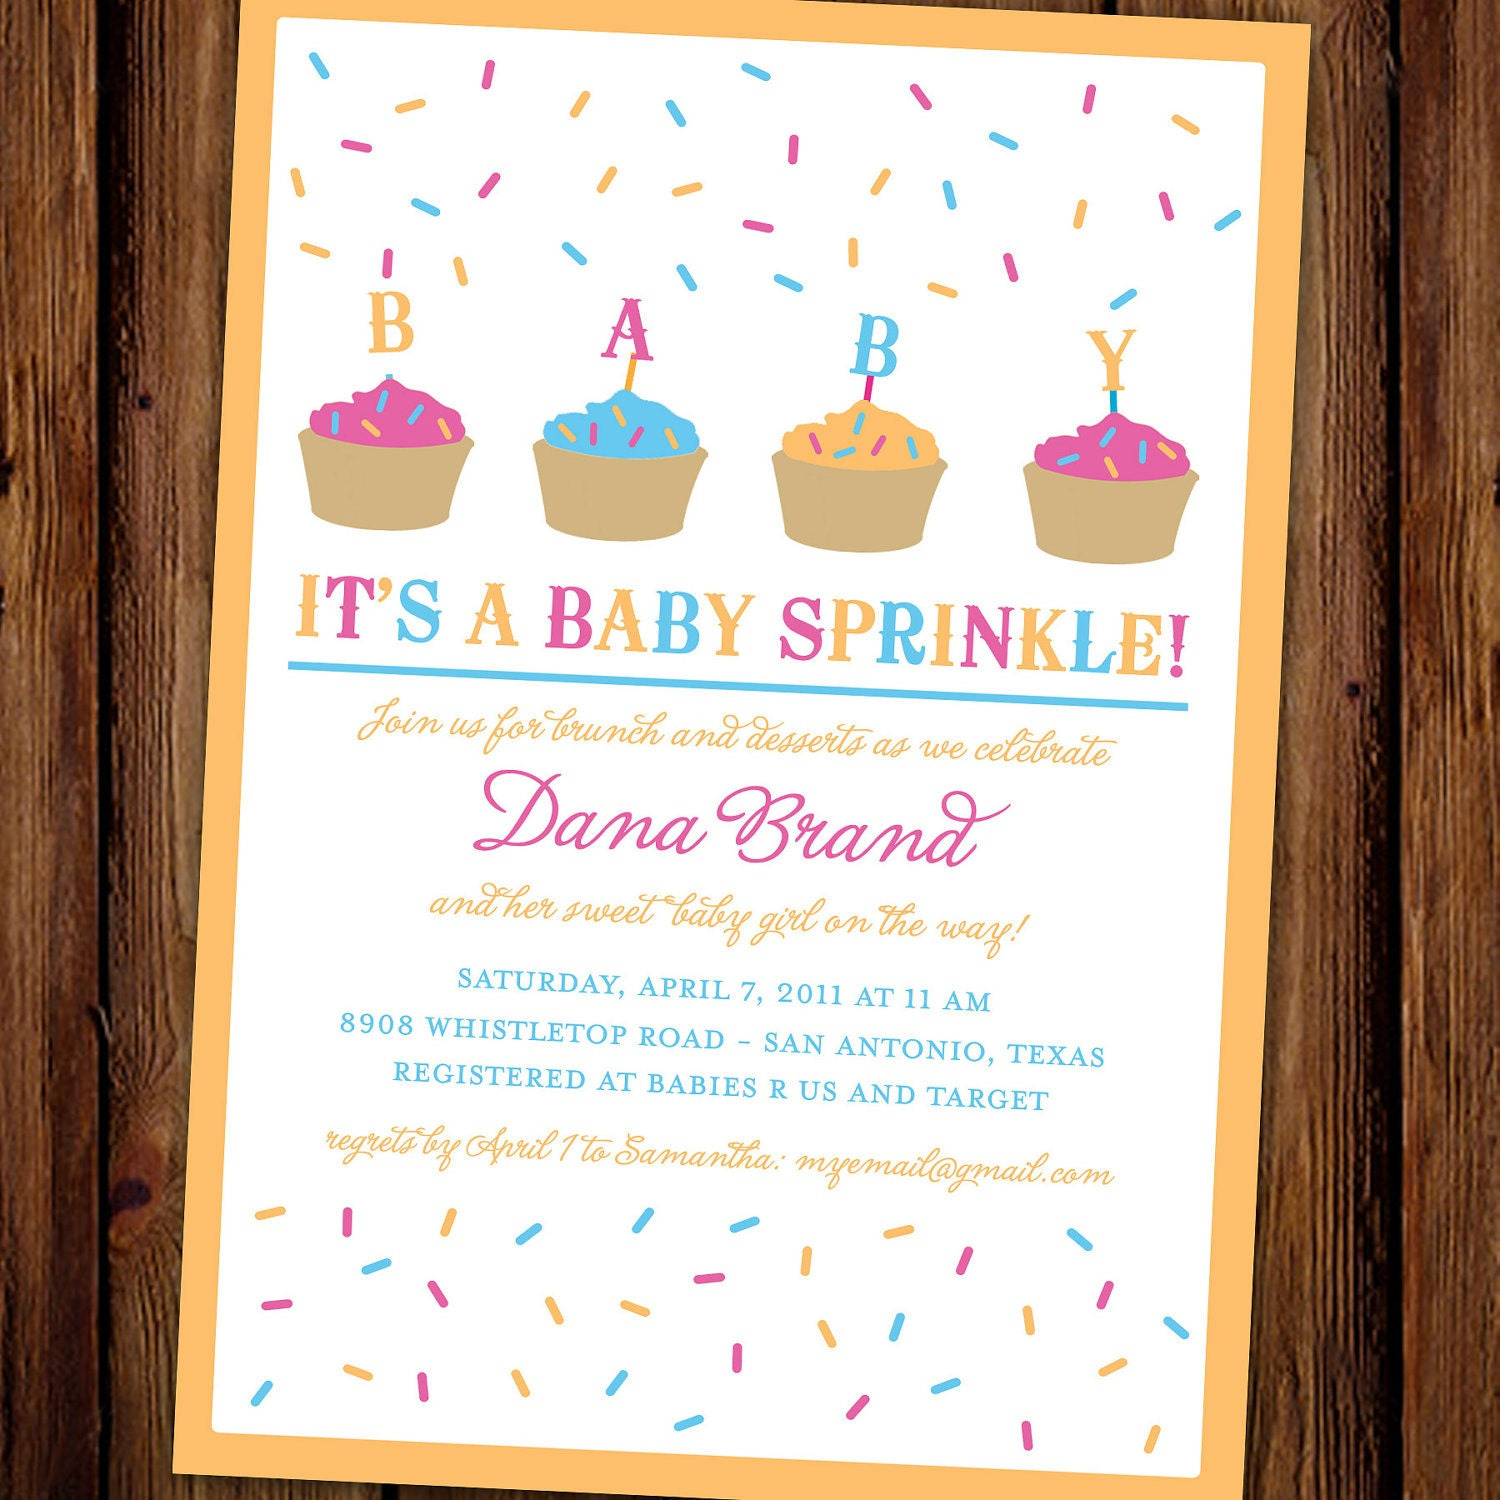 Baby Sprinkle Invite as beautiful invitations example